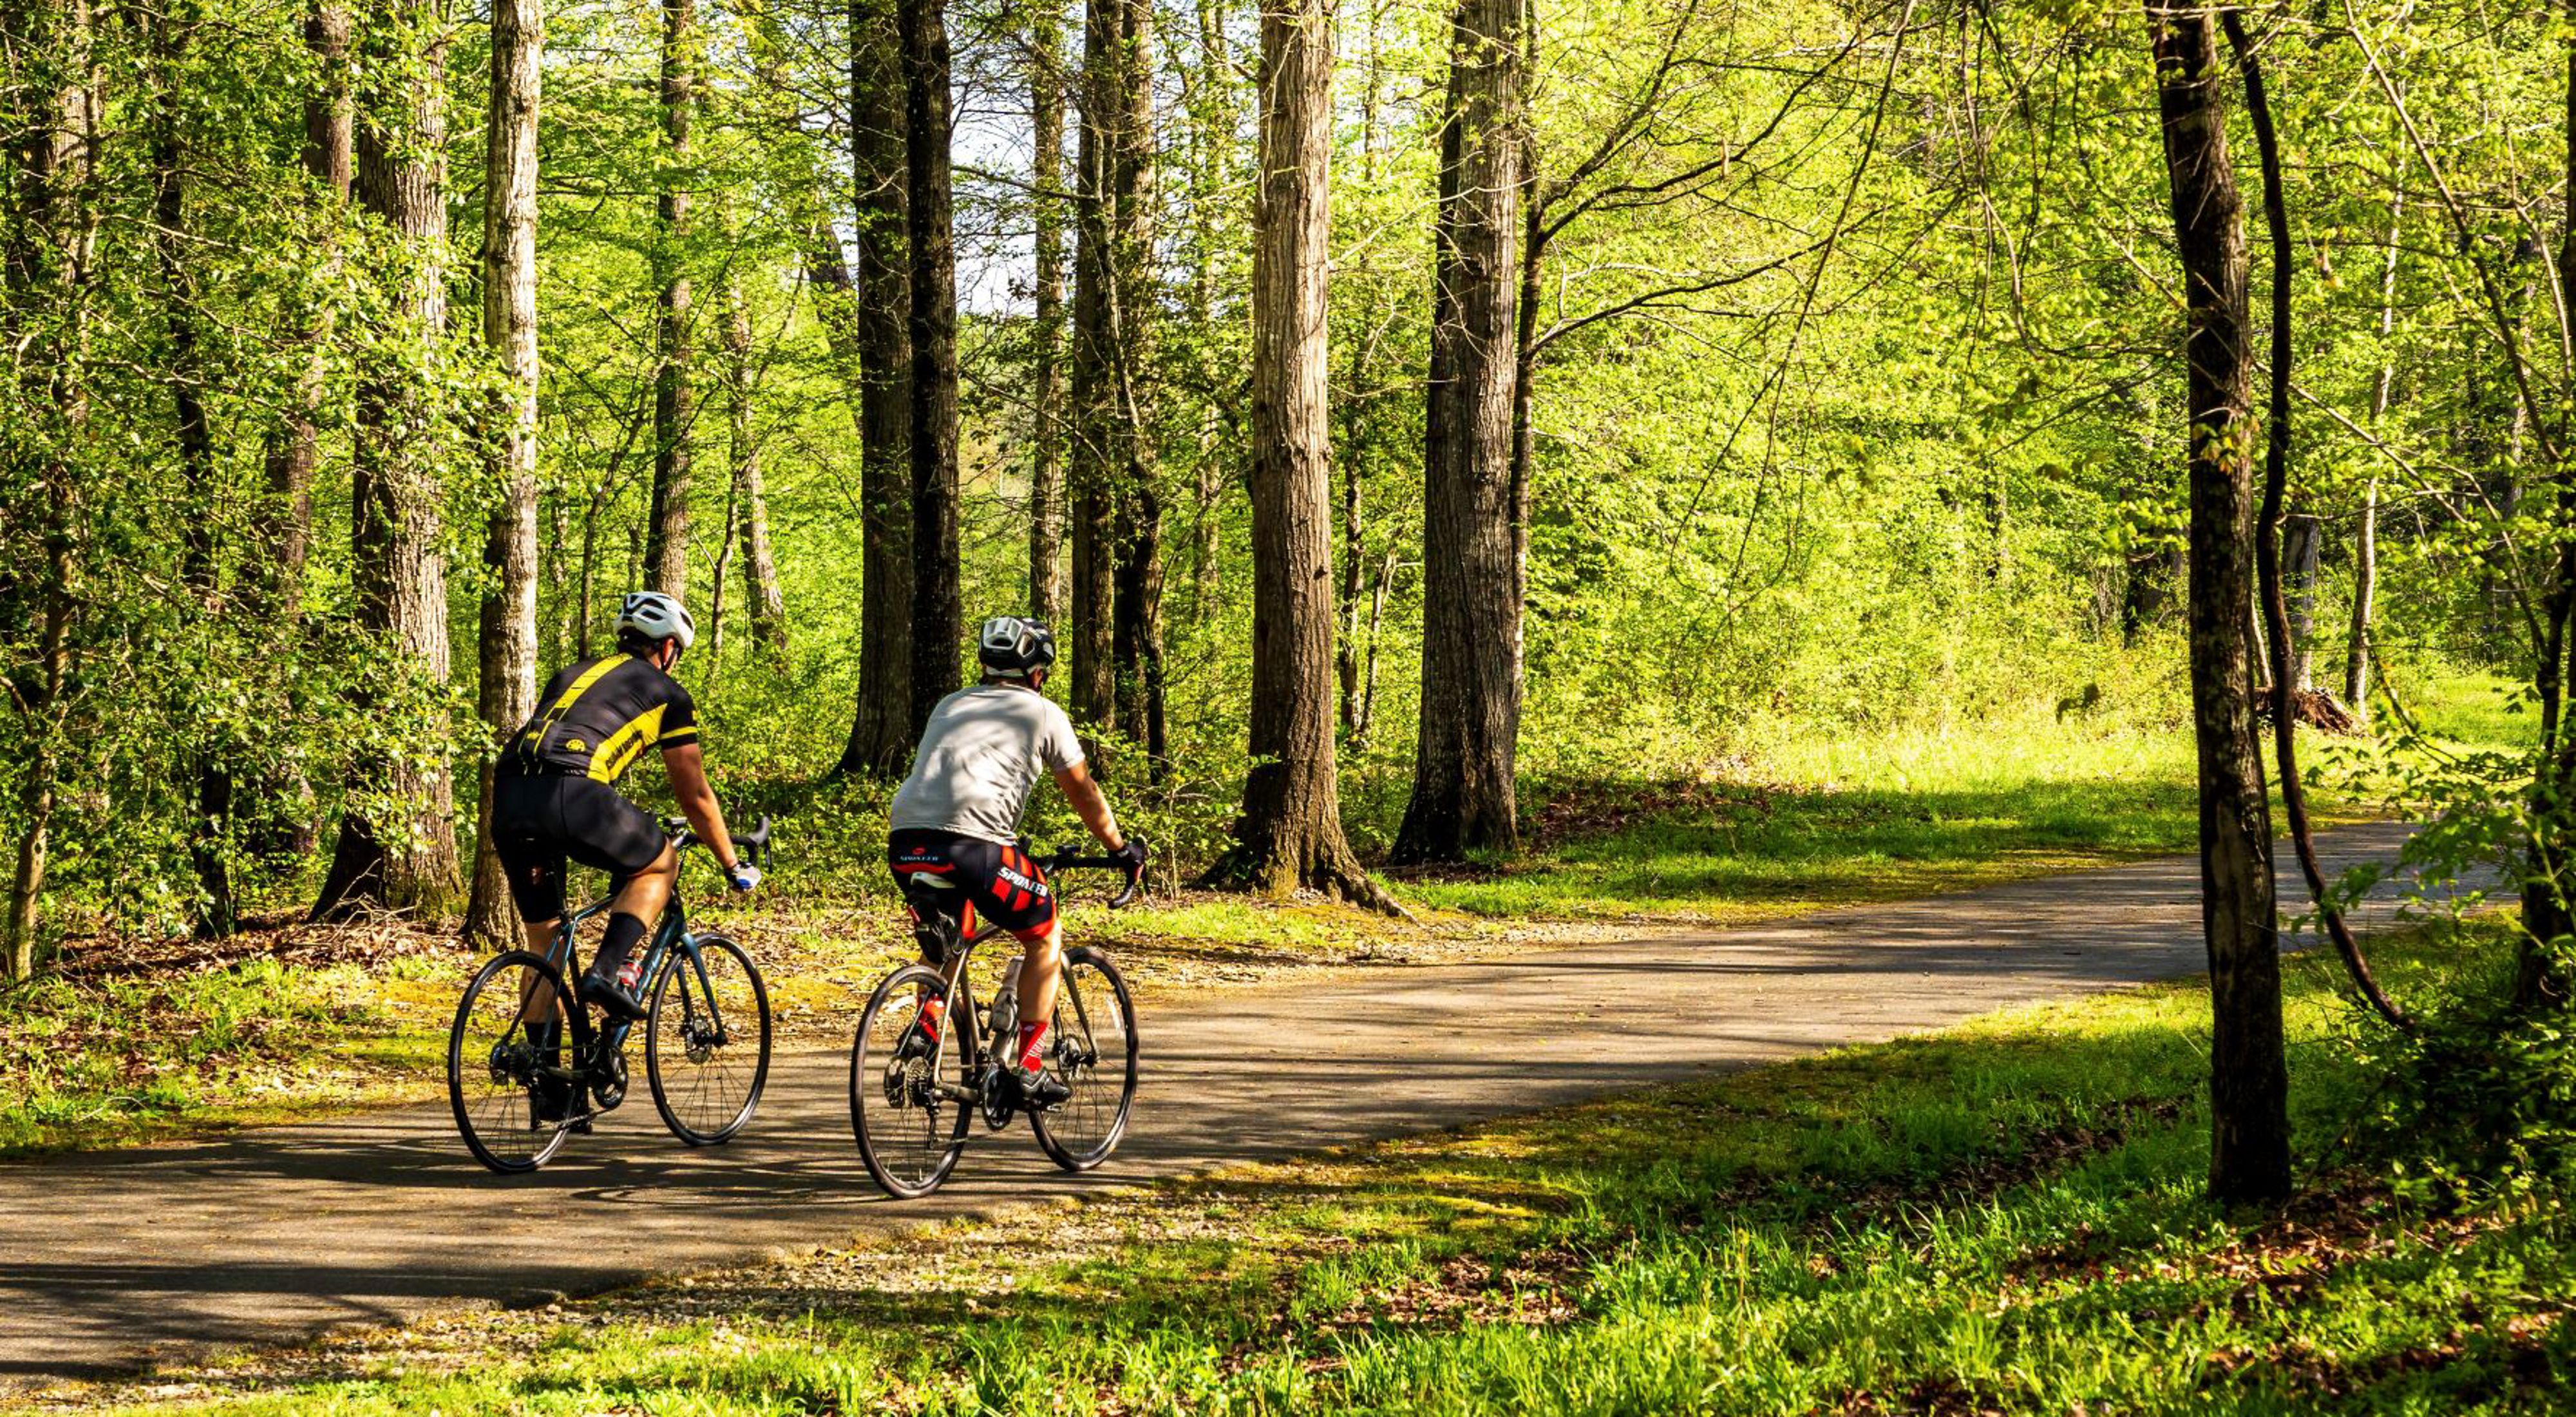 two men biking through a forest-covered trail